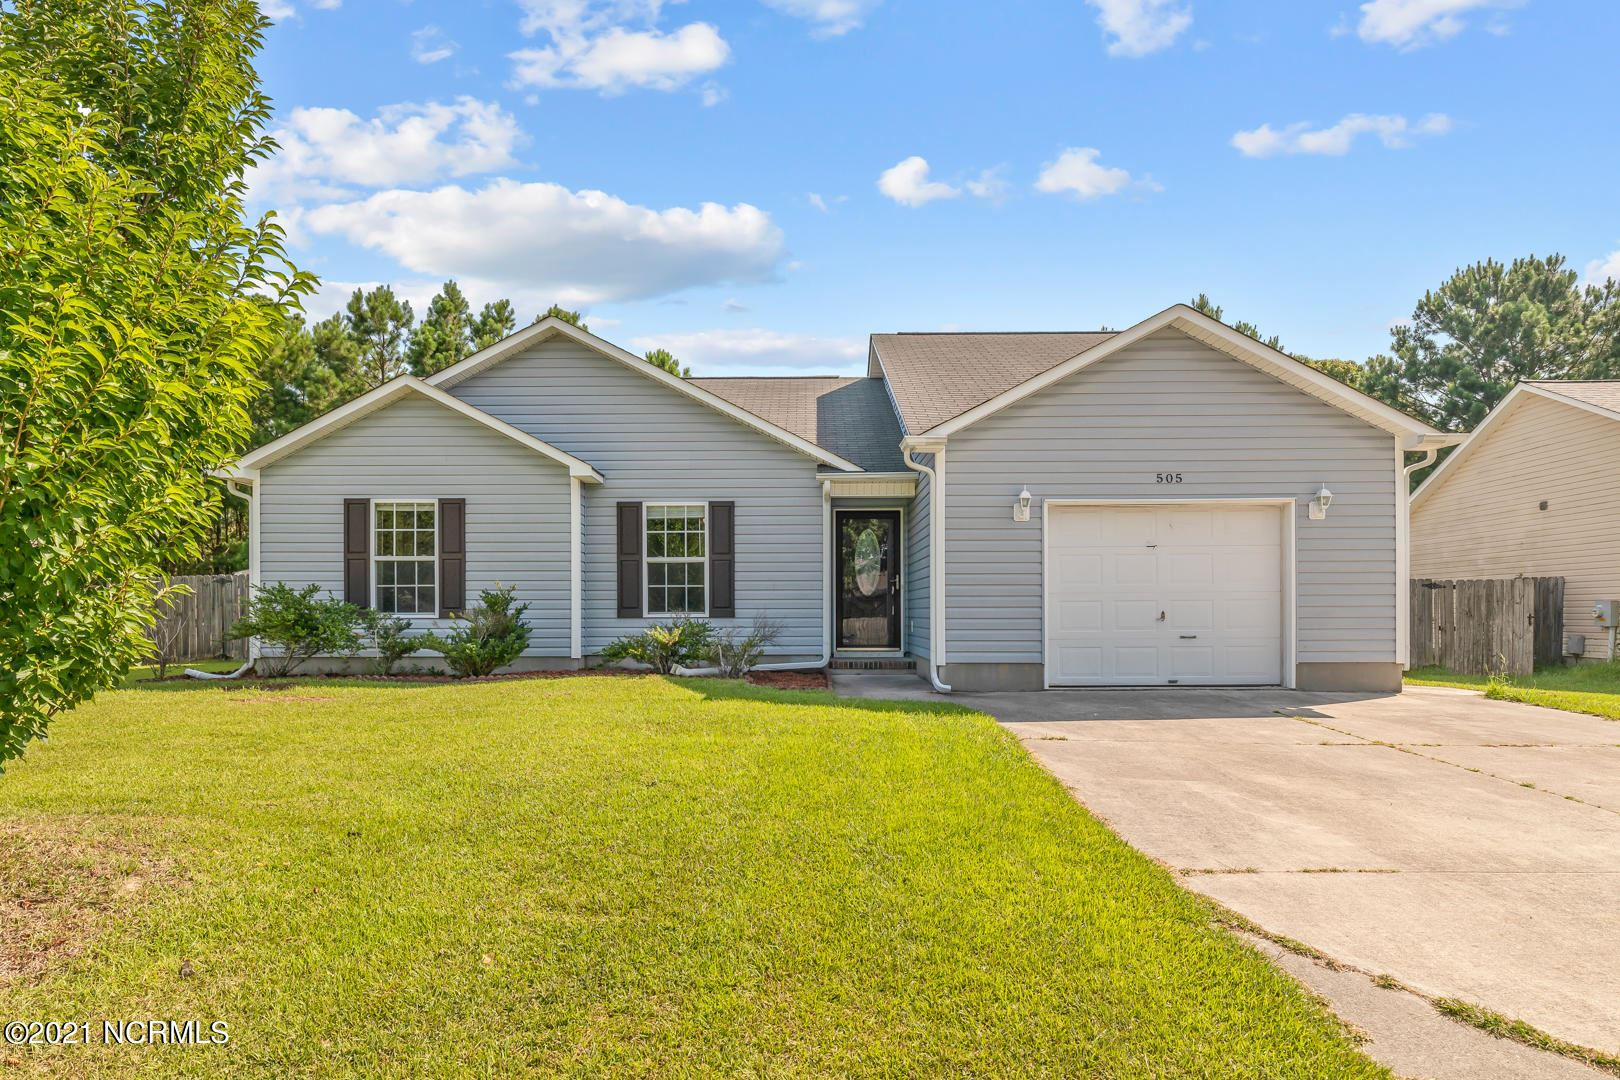 Photo for 505 Huff Drive, Jacksonville, NC 28546 (MLS # 100281567)